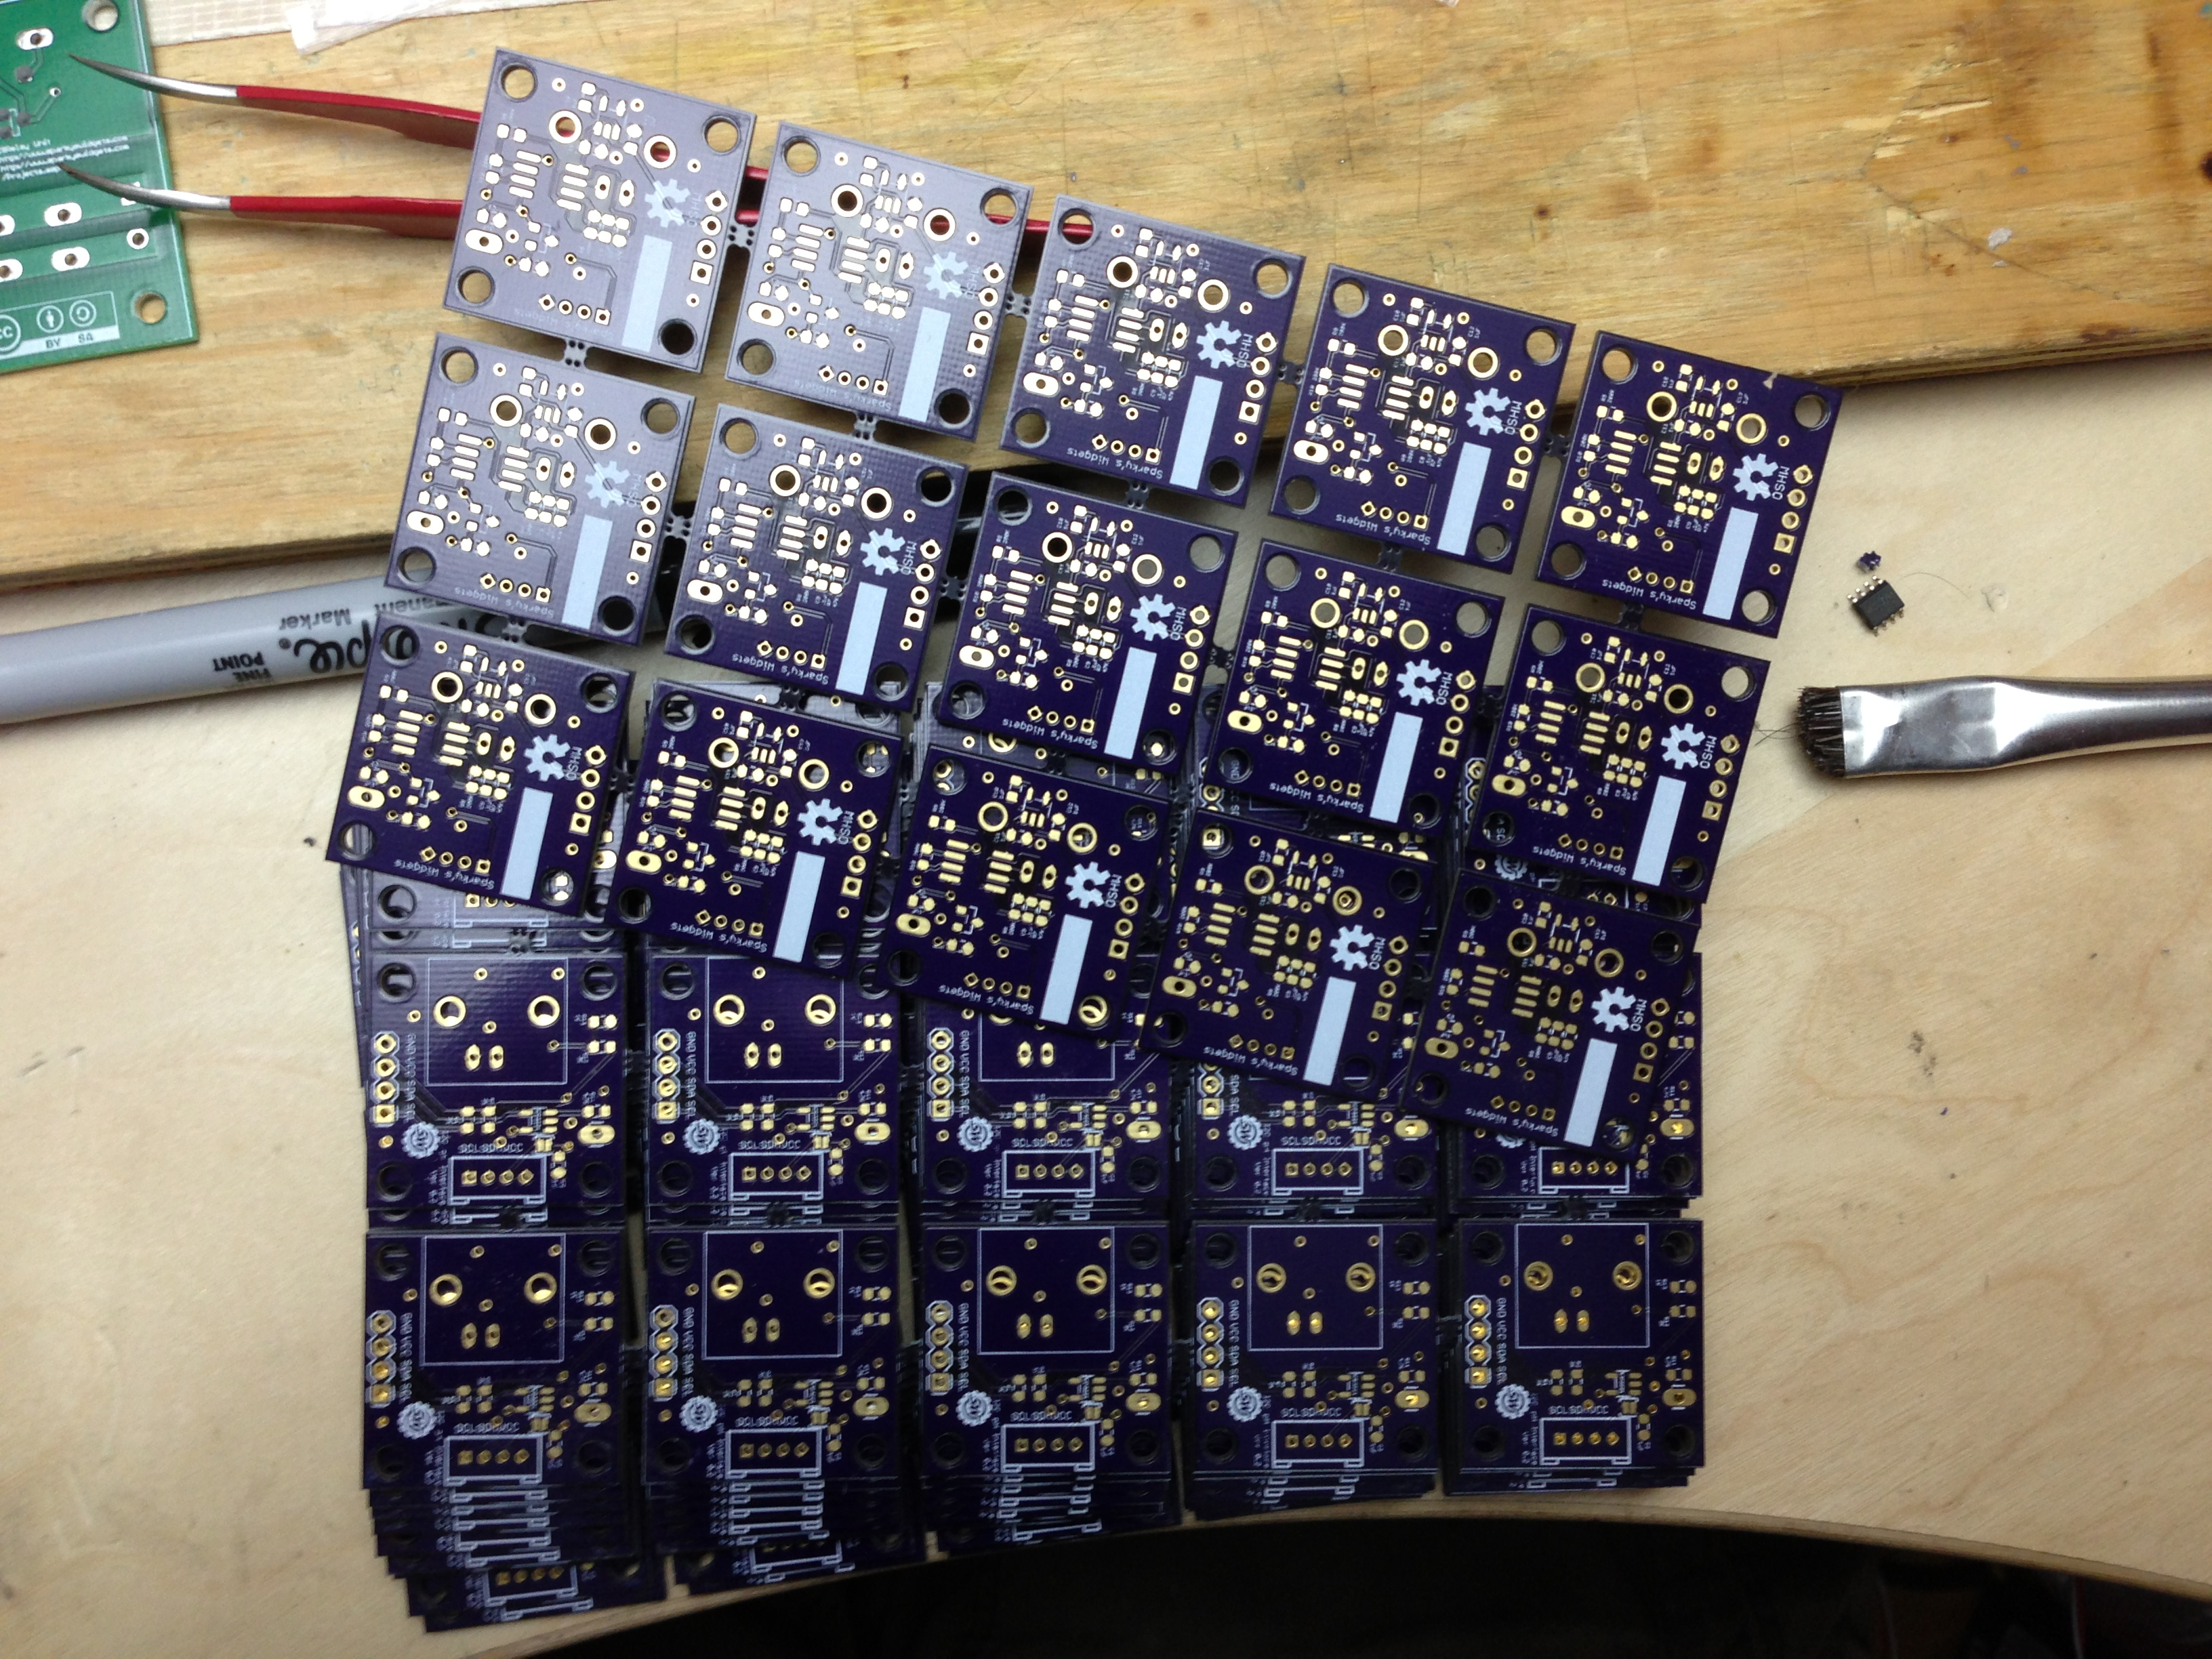 Nice batch of OSHPark boards ready for assembly!